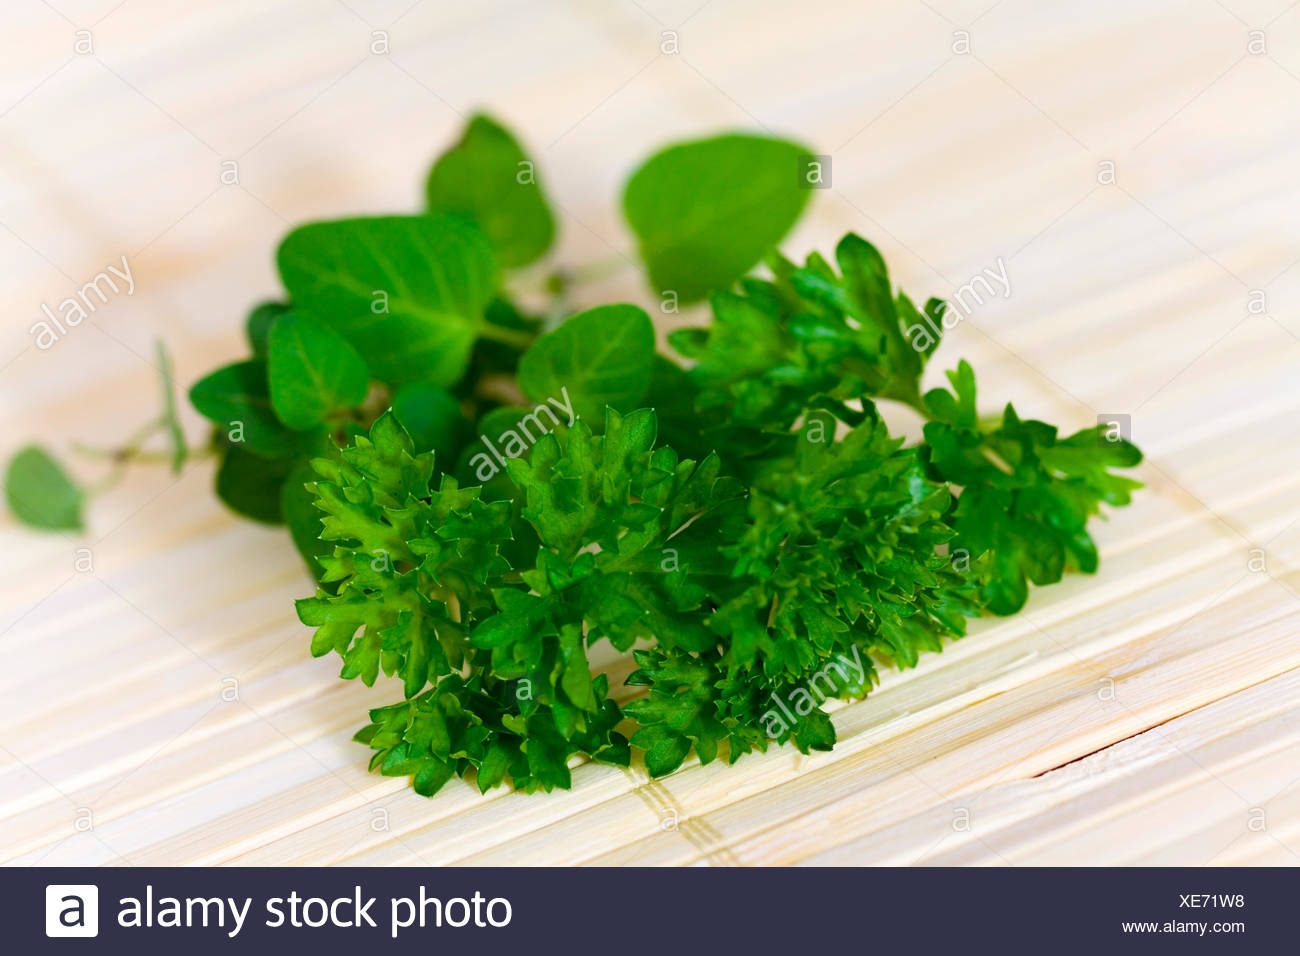 peppermint and parsley - Stock Image